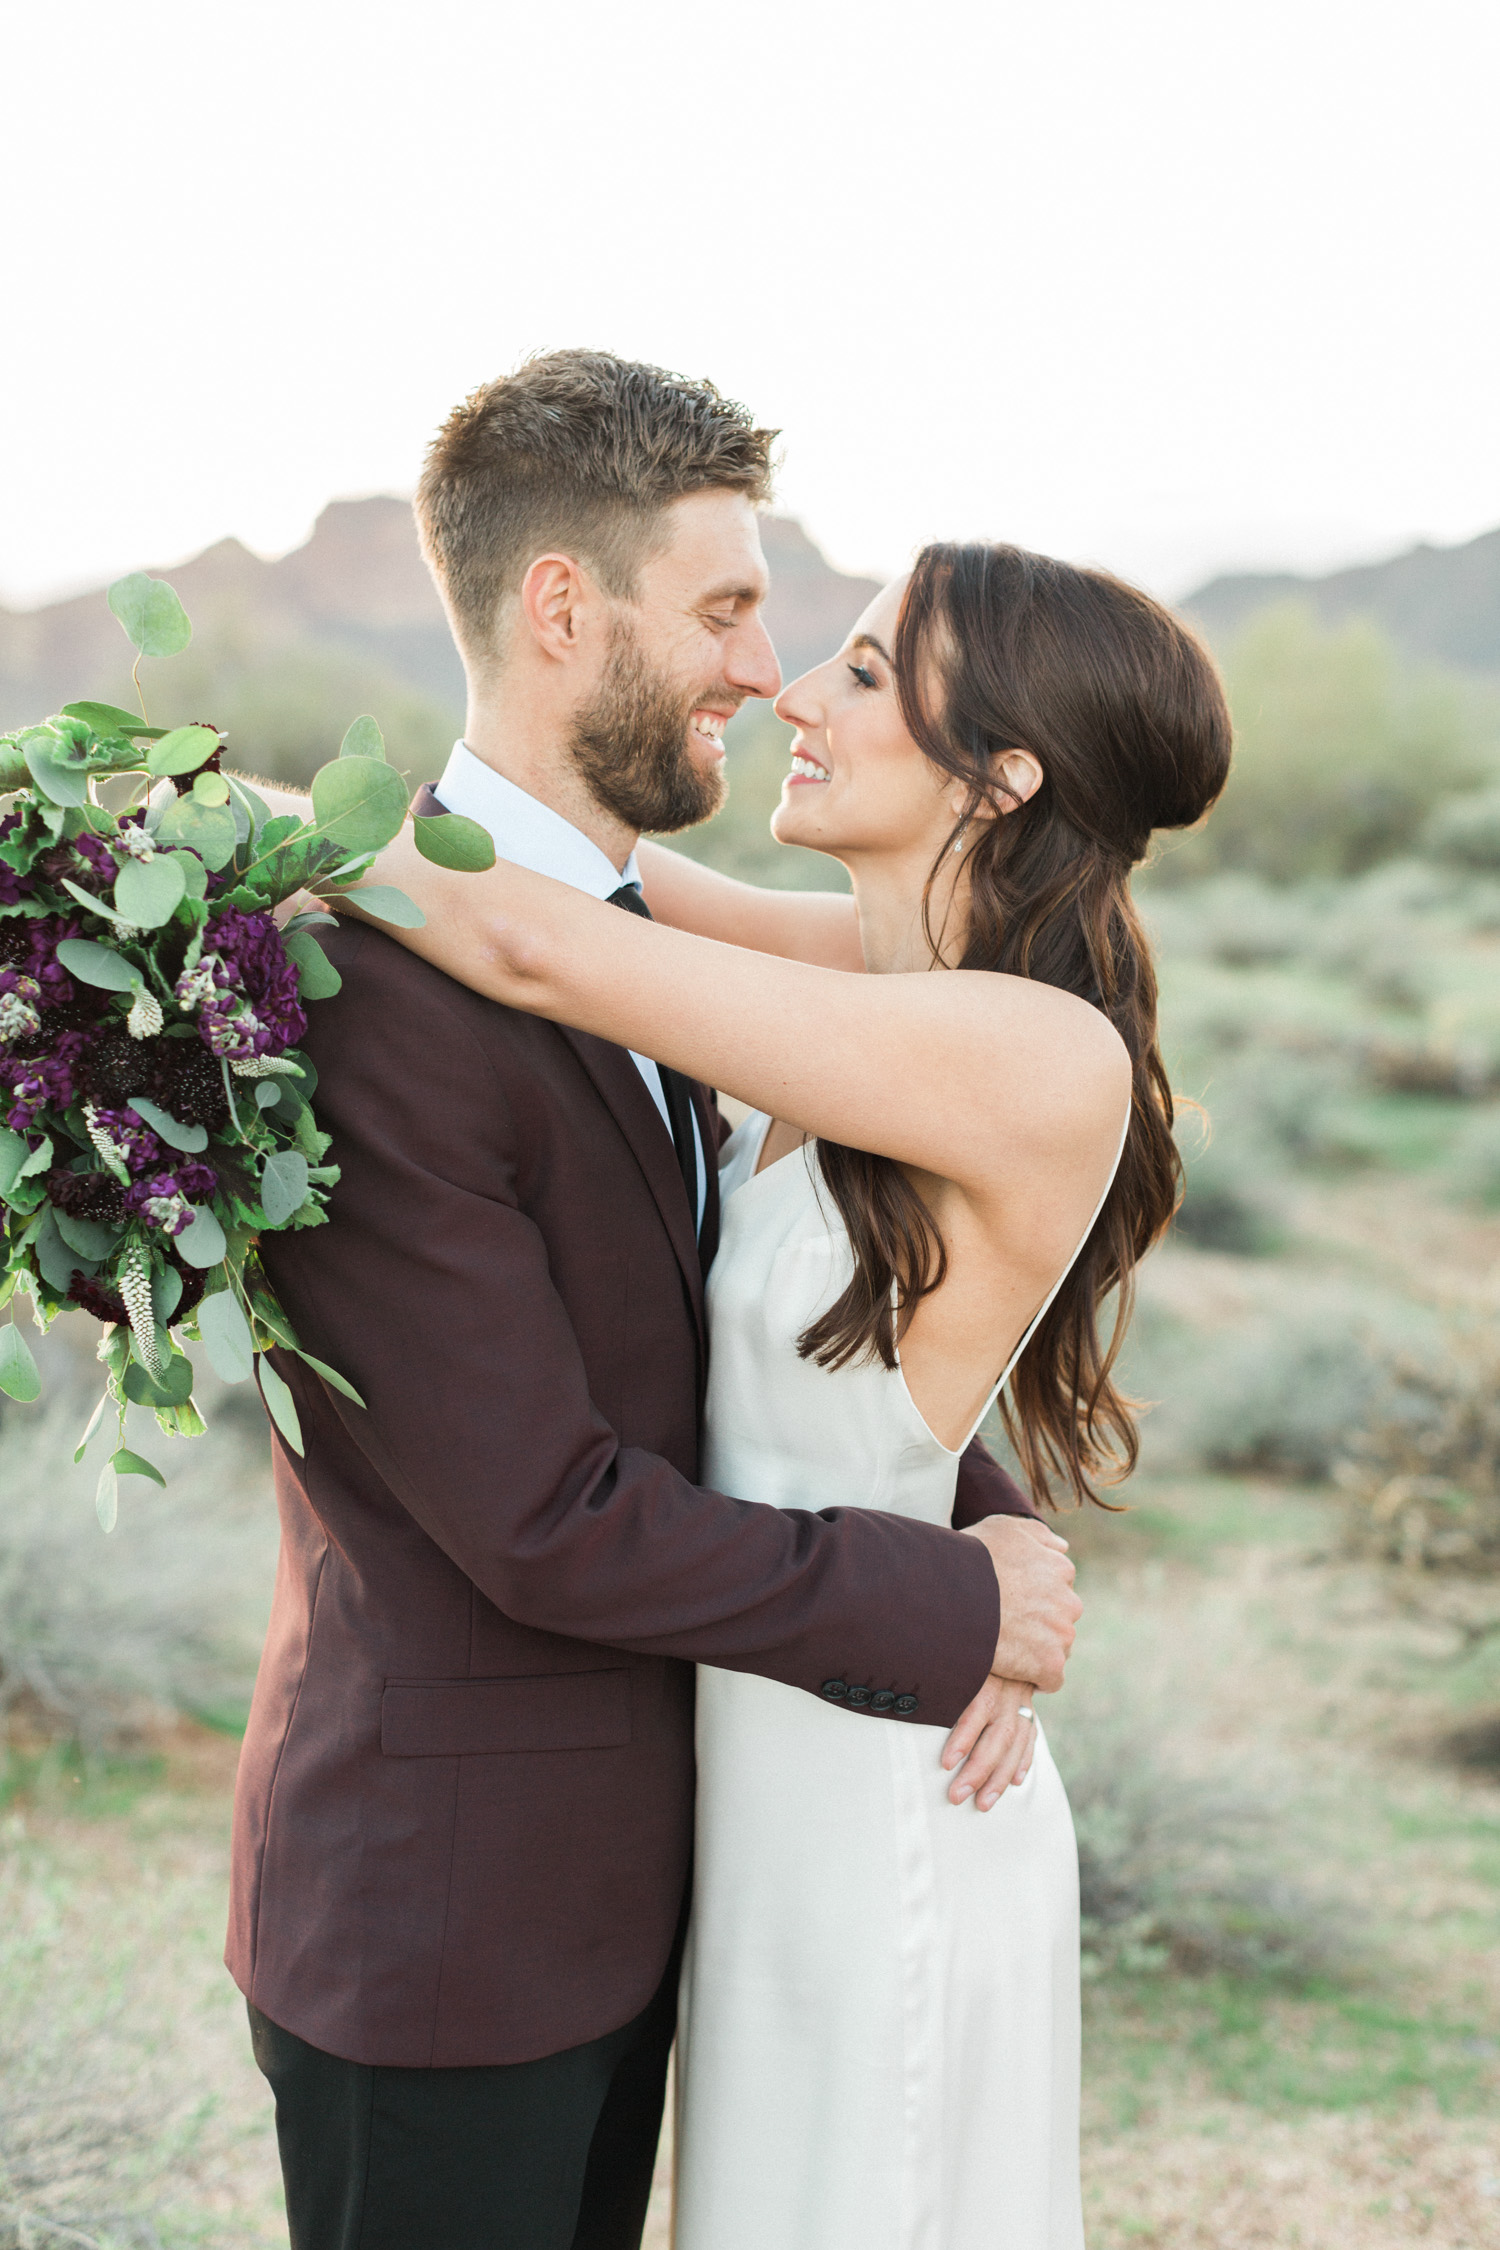 Beautiful couple smiling at each other on the day of their elopement in Phoenix, AZ.